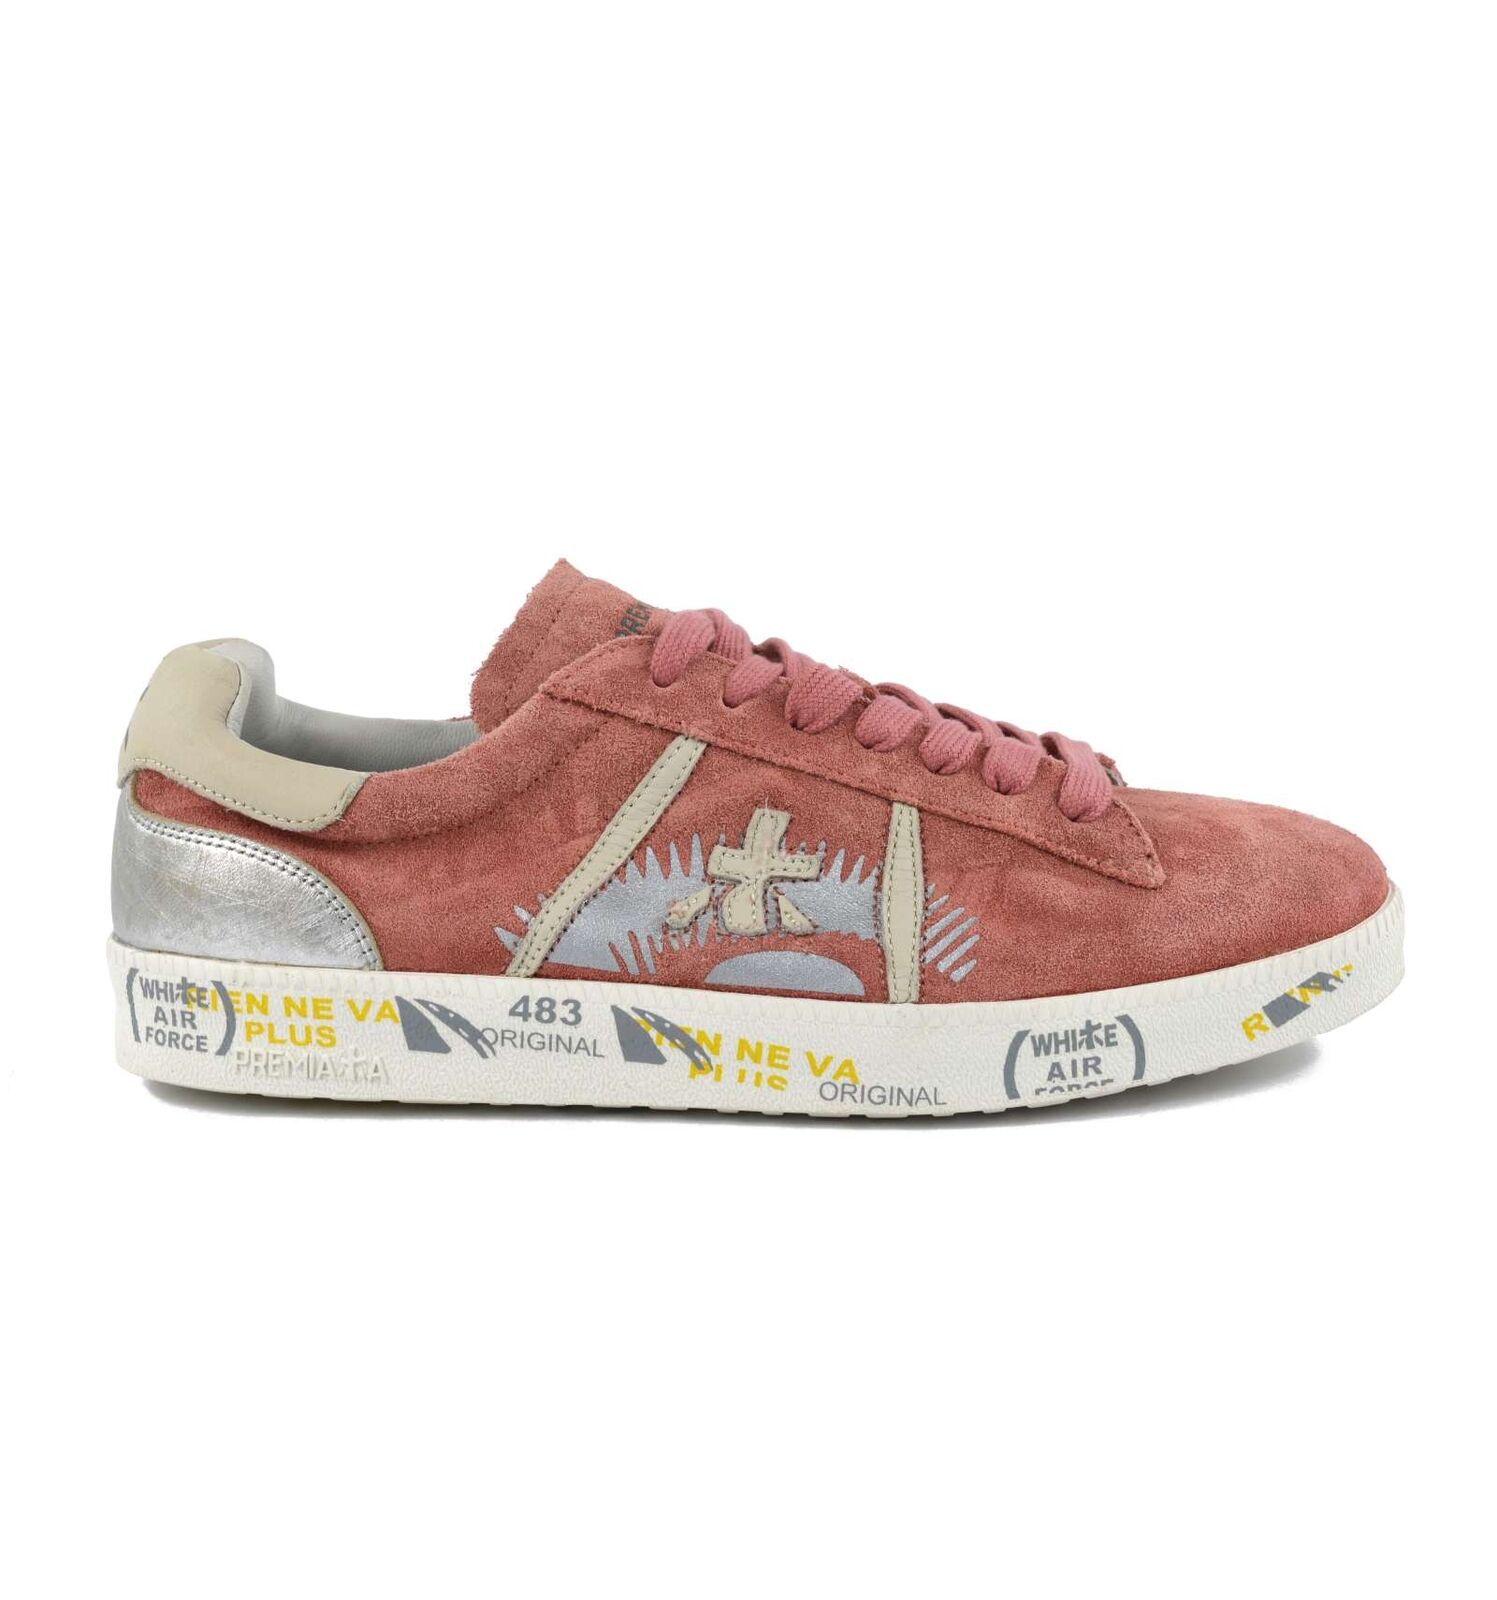 Premiata Woman Andy-Q 3078 shoes Sneakers Suede Vintage Pink